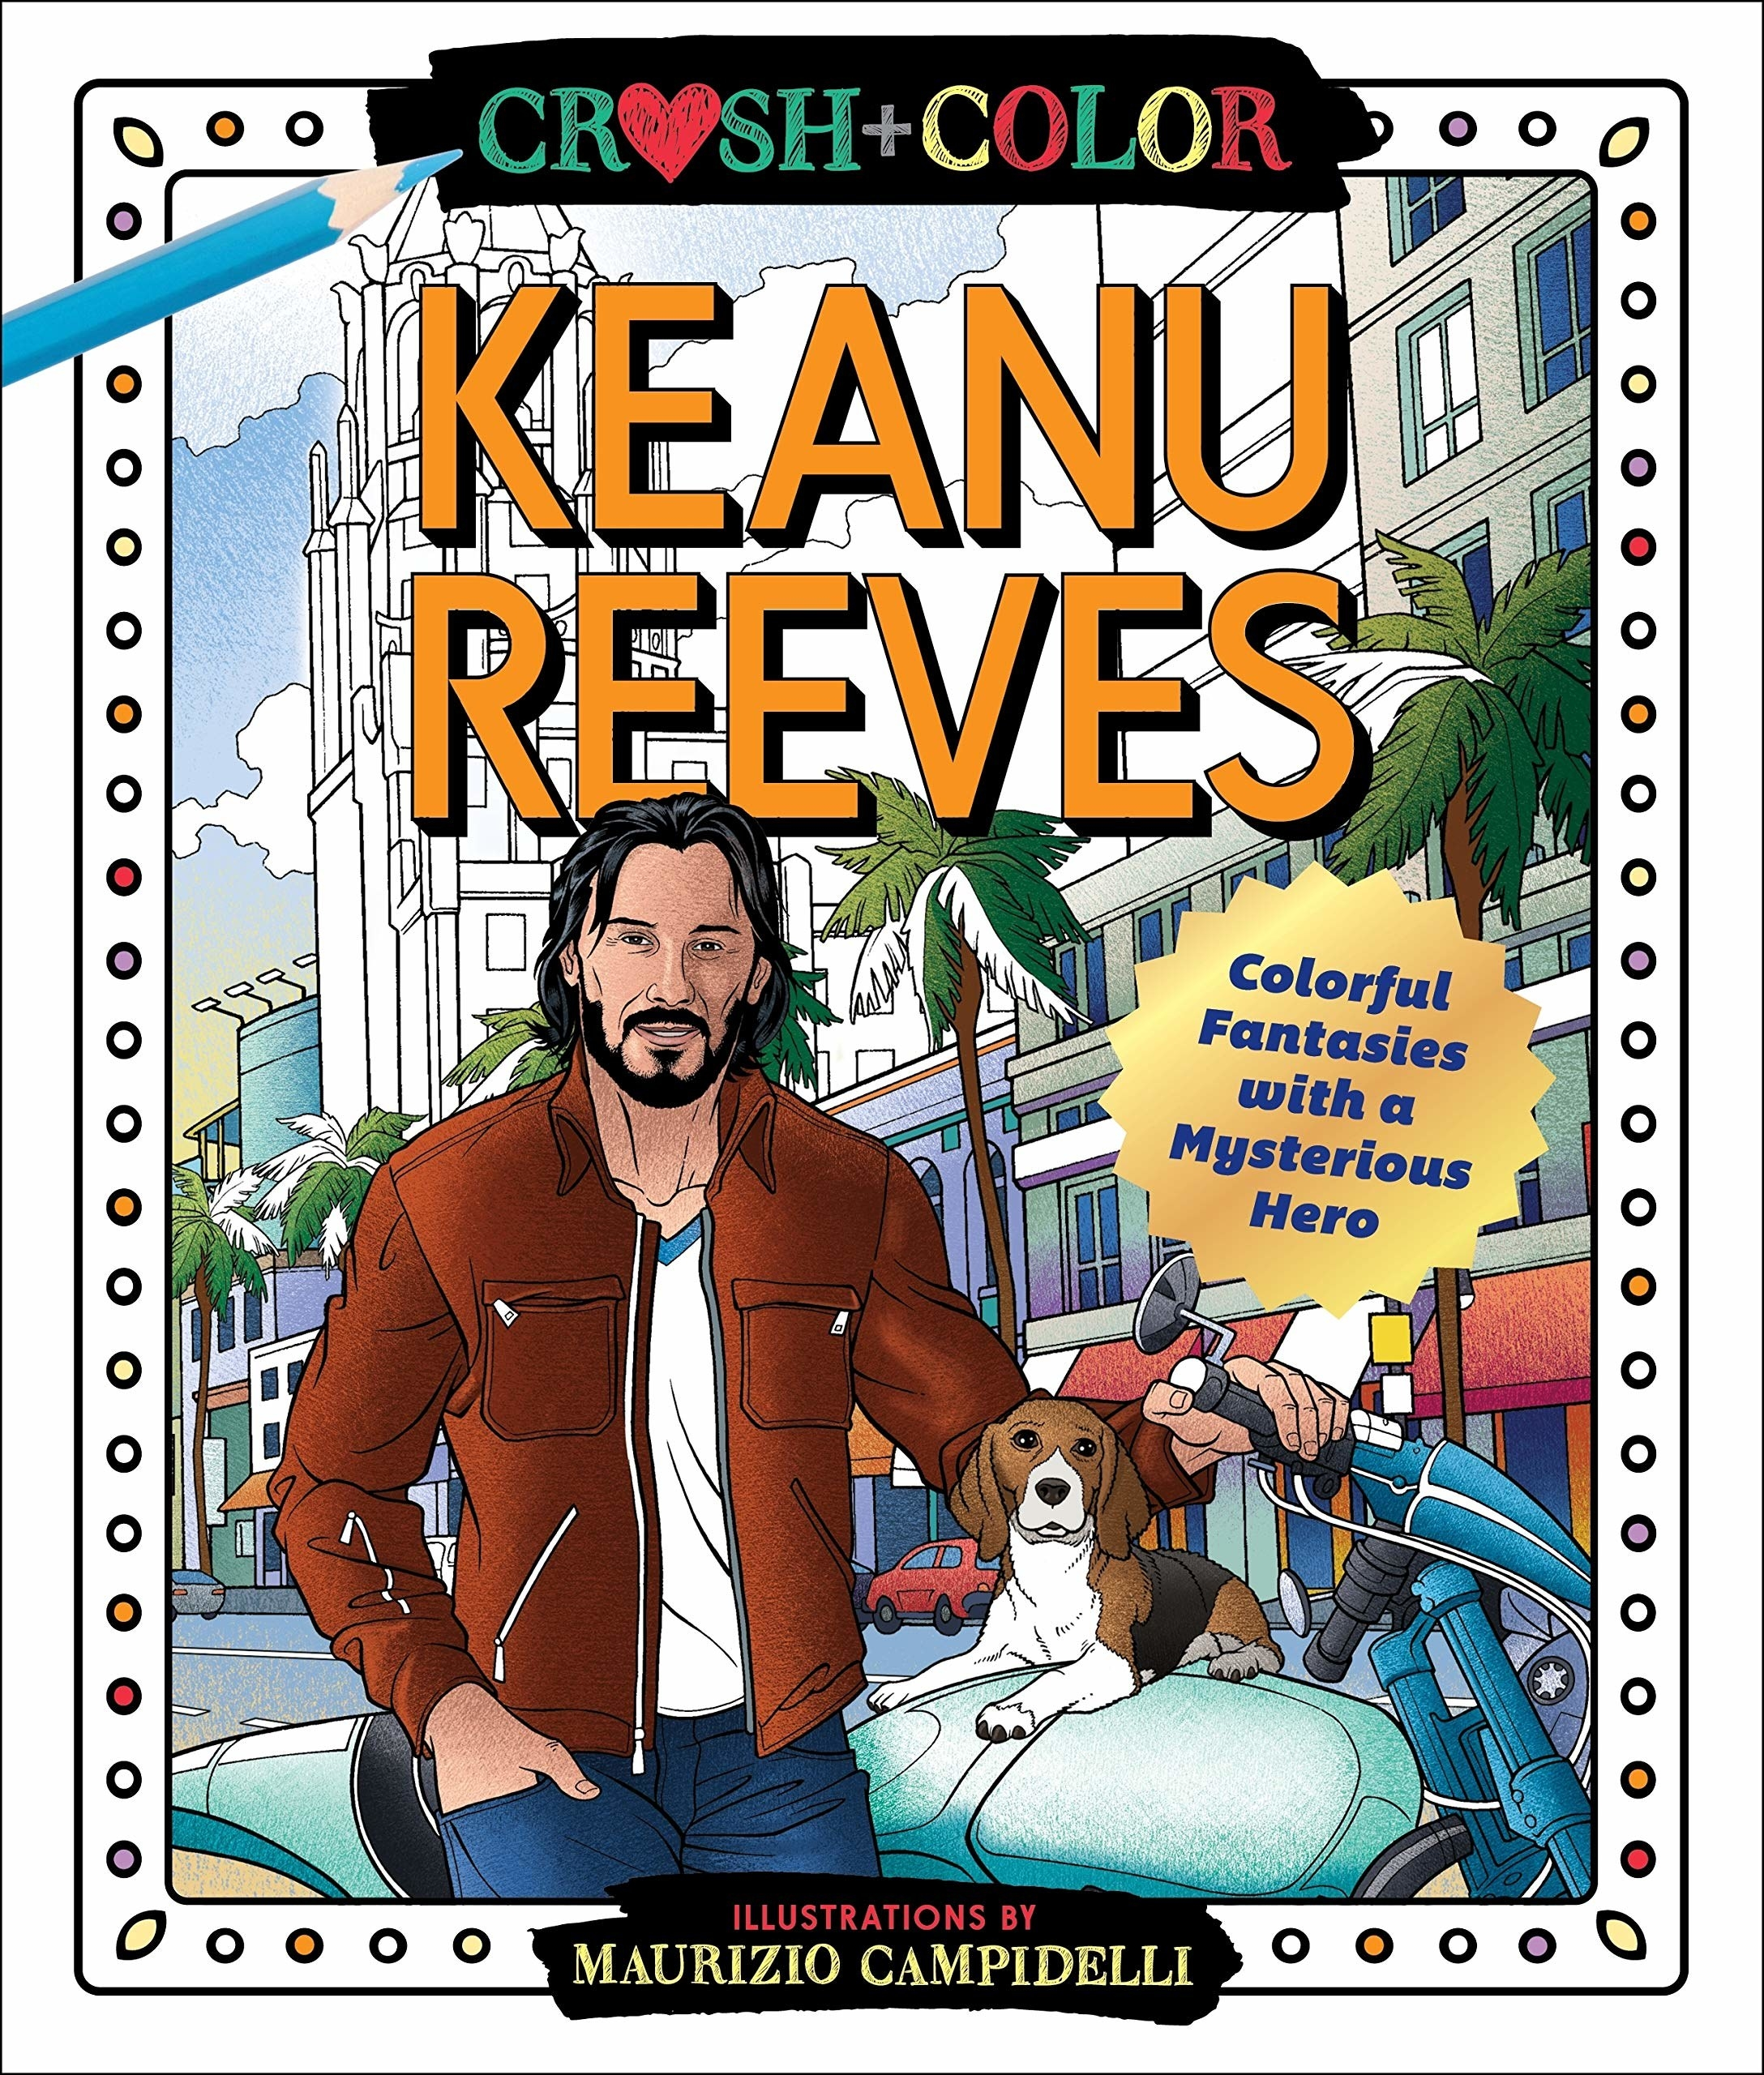 The cover of the book, featuring Keanu Reeves with a beagle